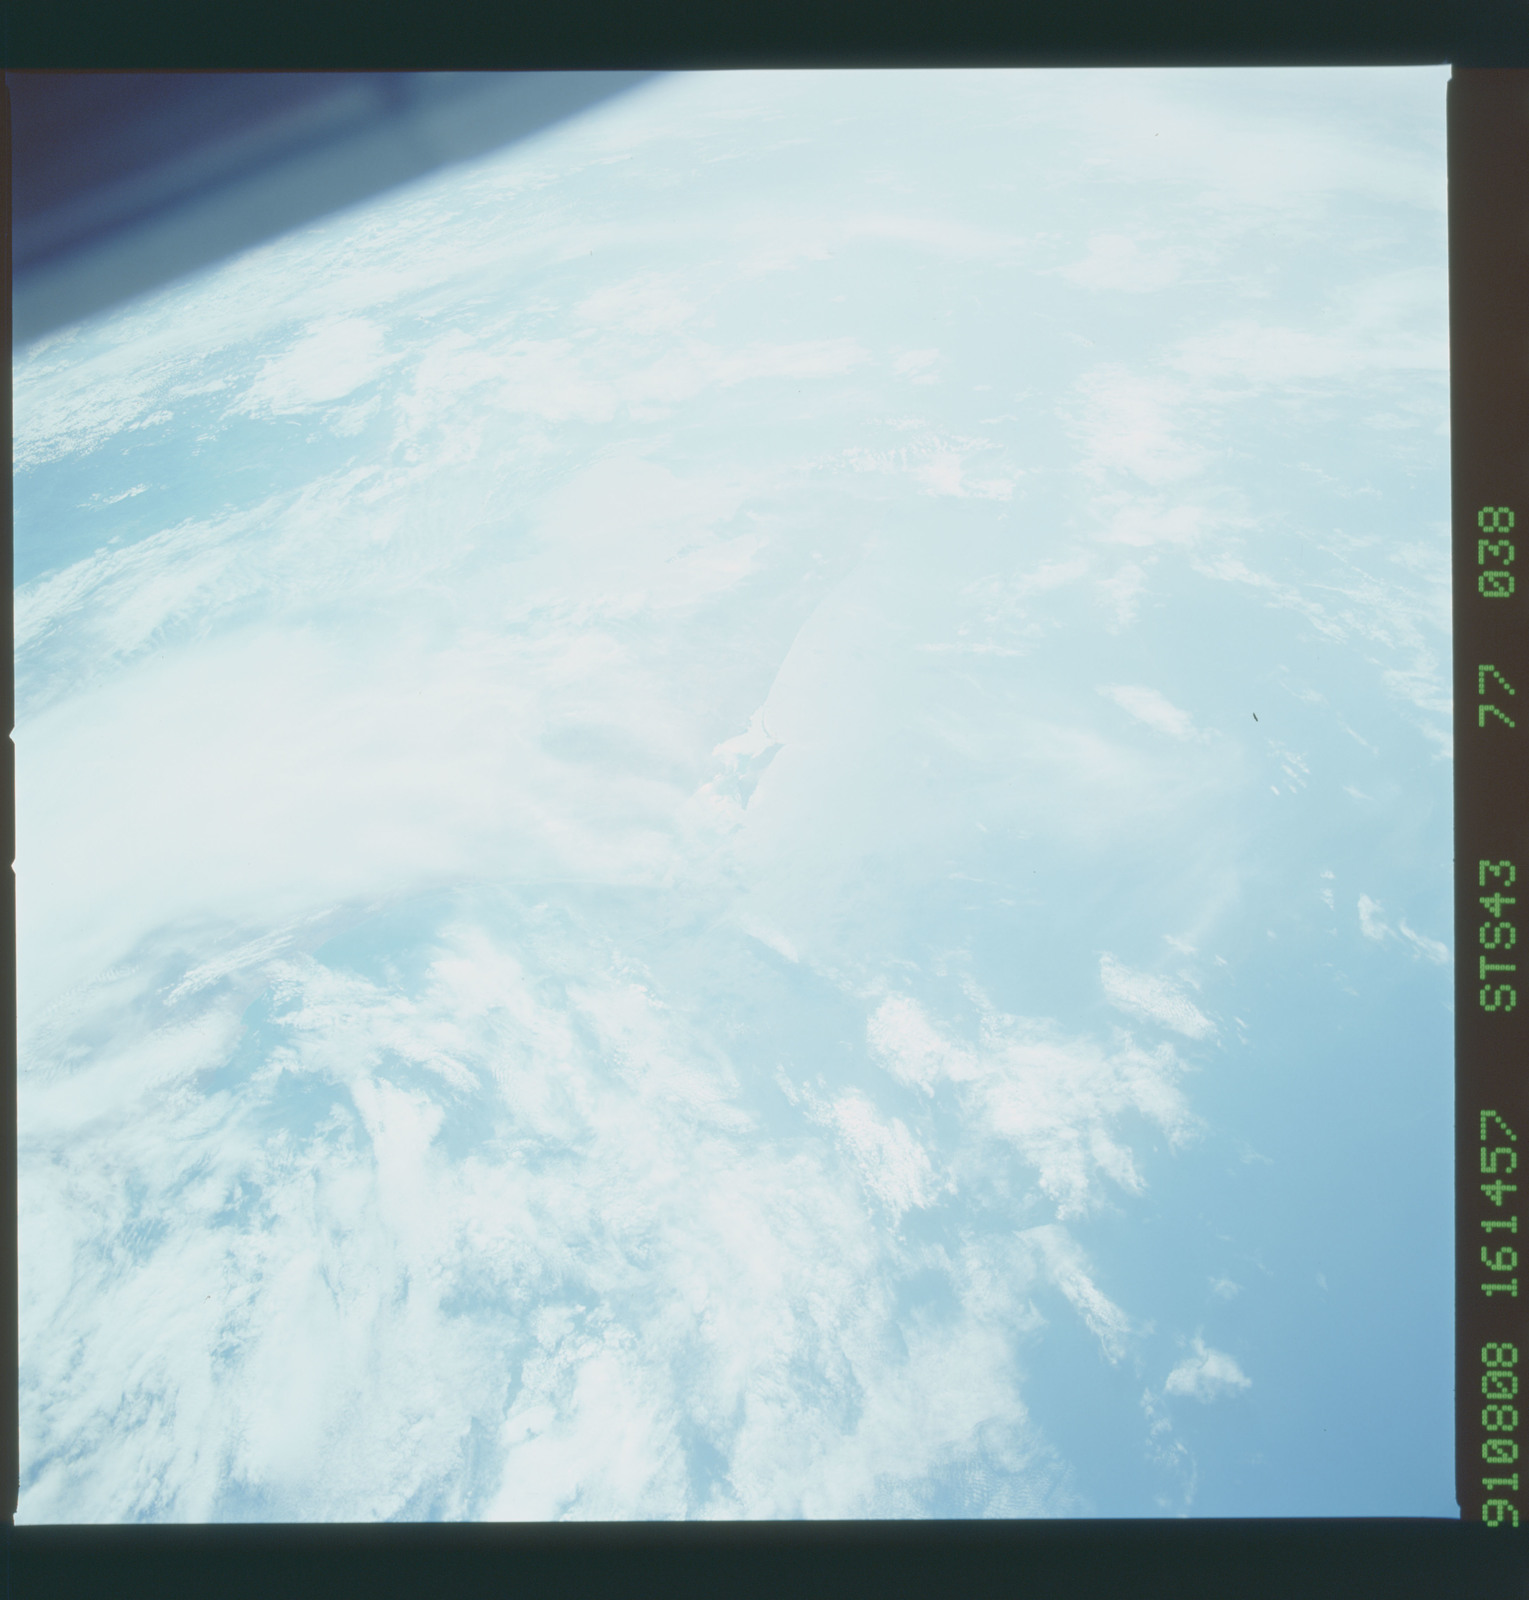 S43-77-038 - STS-043 - STS-43 earth observations